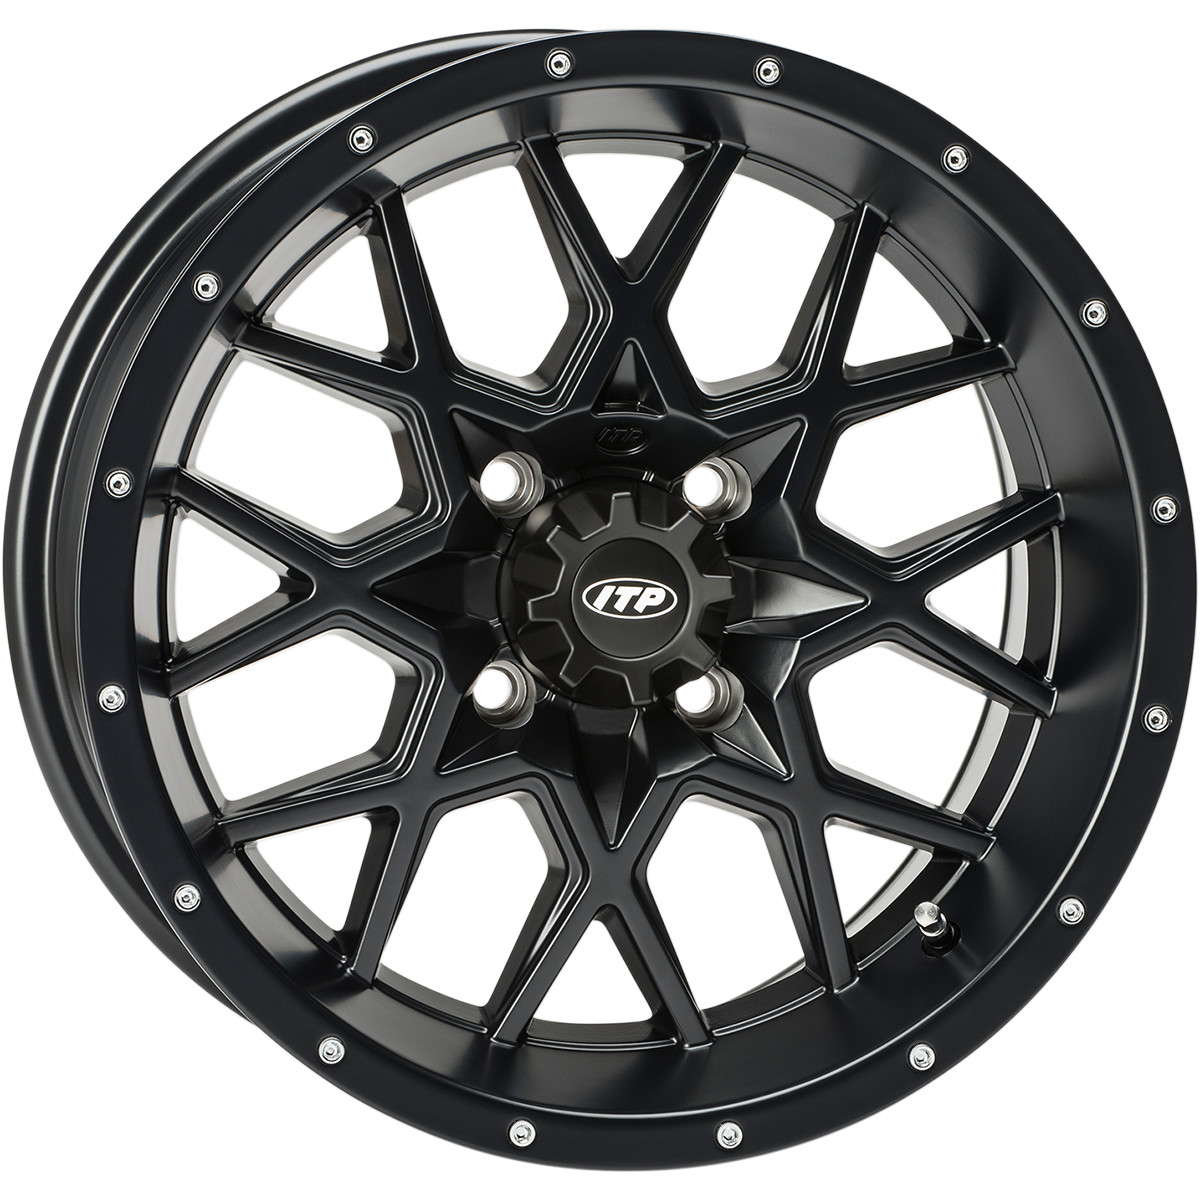 ITP 12x7 4x137 Hurricane Black 6x6 vannesarja Can-Am